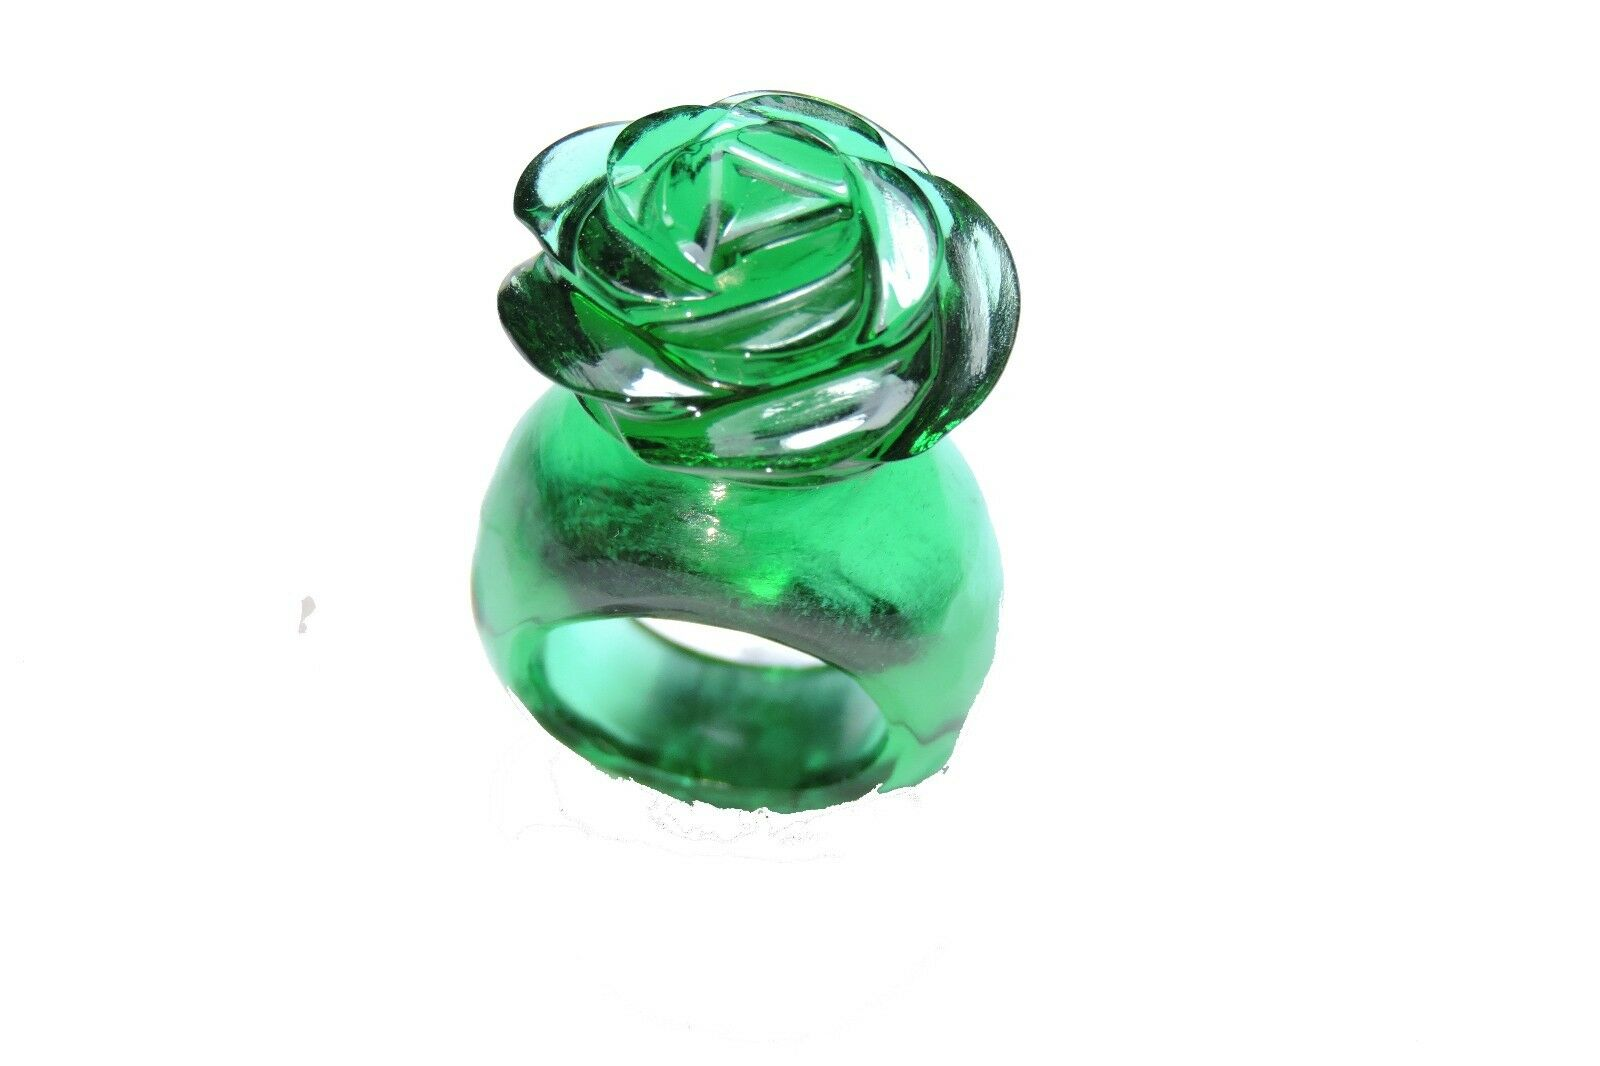 Extremely Beautiful Emerald Green Quartz Hand Carved pink Flower Shaped Ring